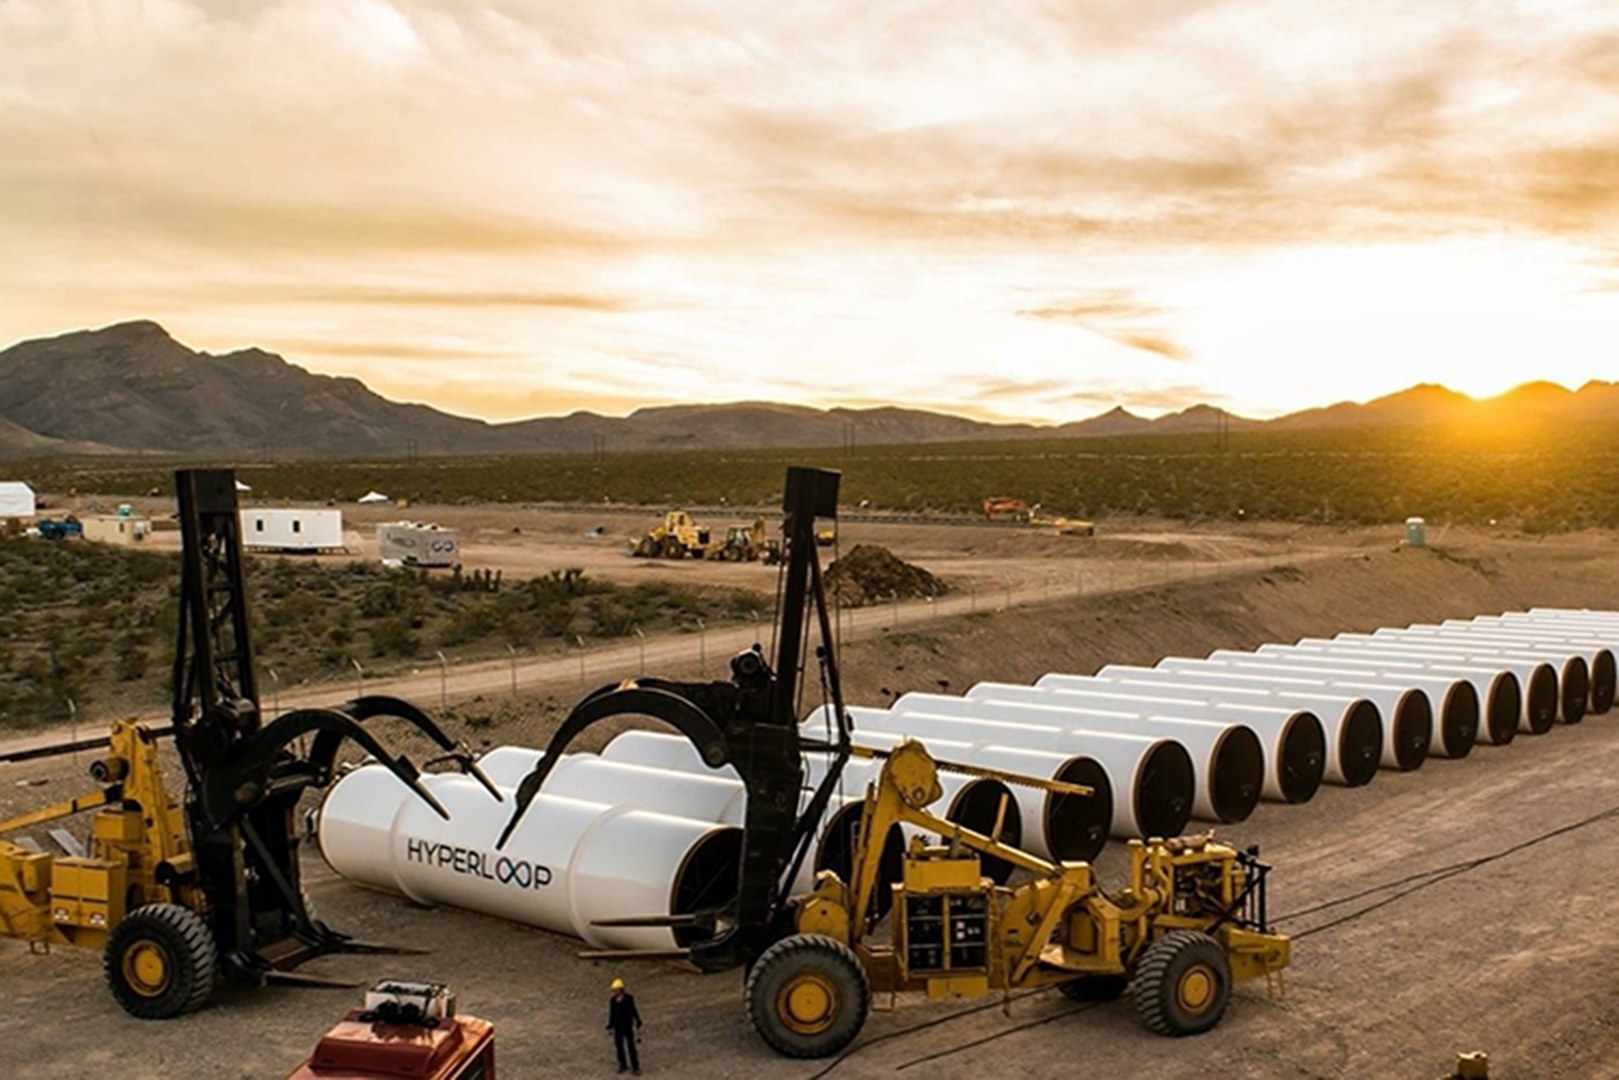 Erster Hyperloop-Test in Nevada geglückt | Companisto Blog